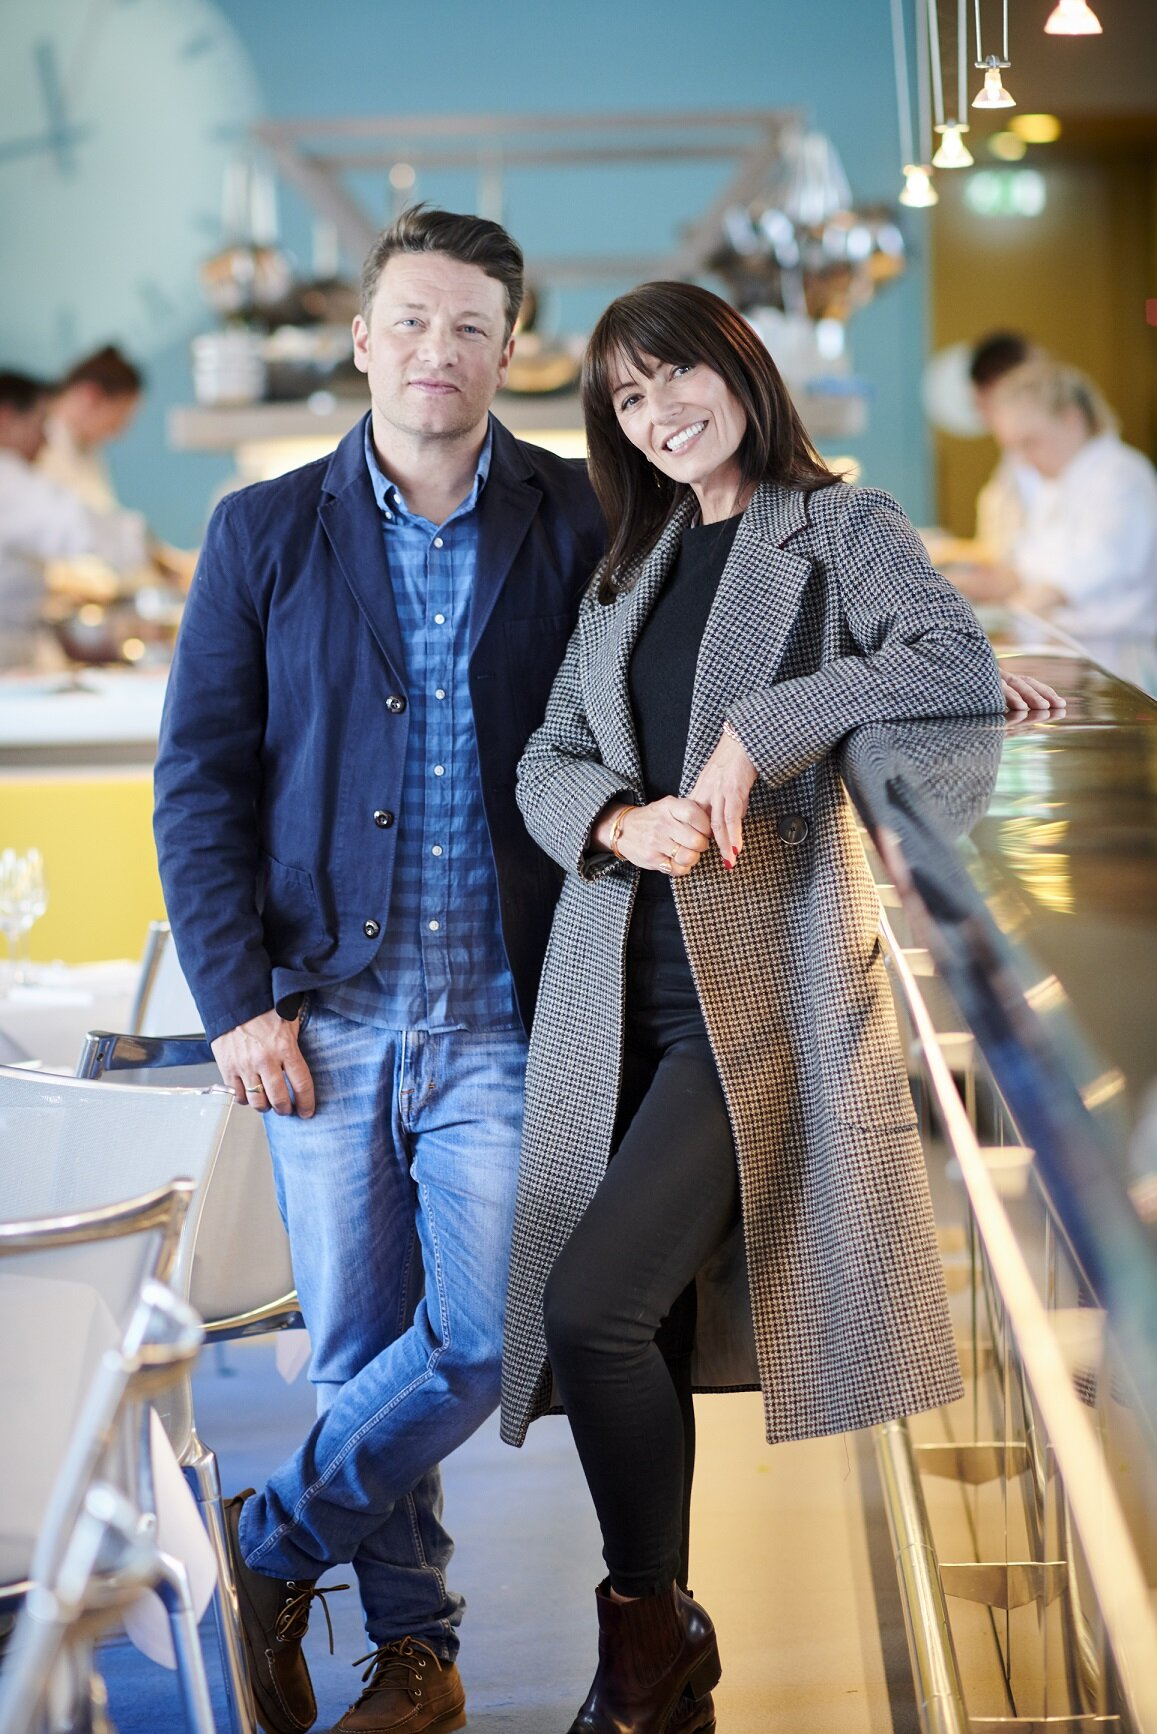 Jamie Oliver: The Naked Chef Bares All  Source: 10 Network